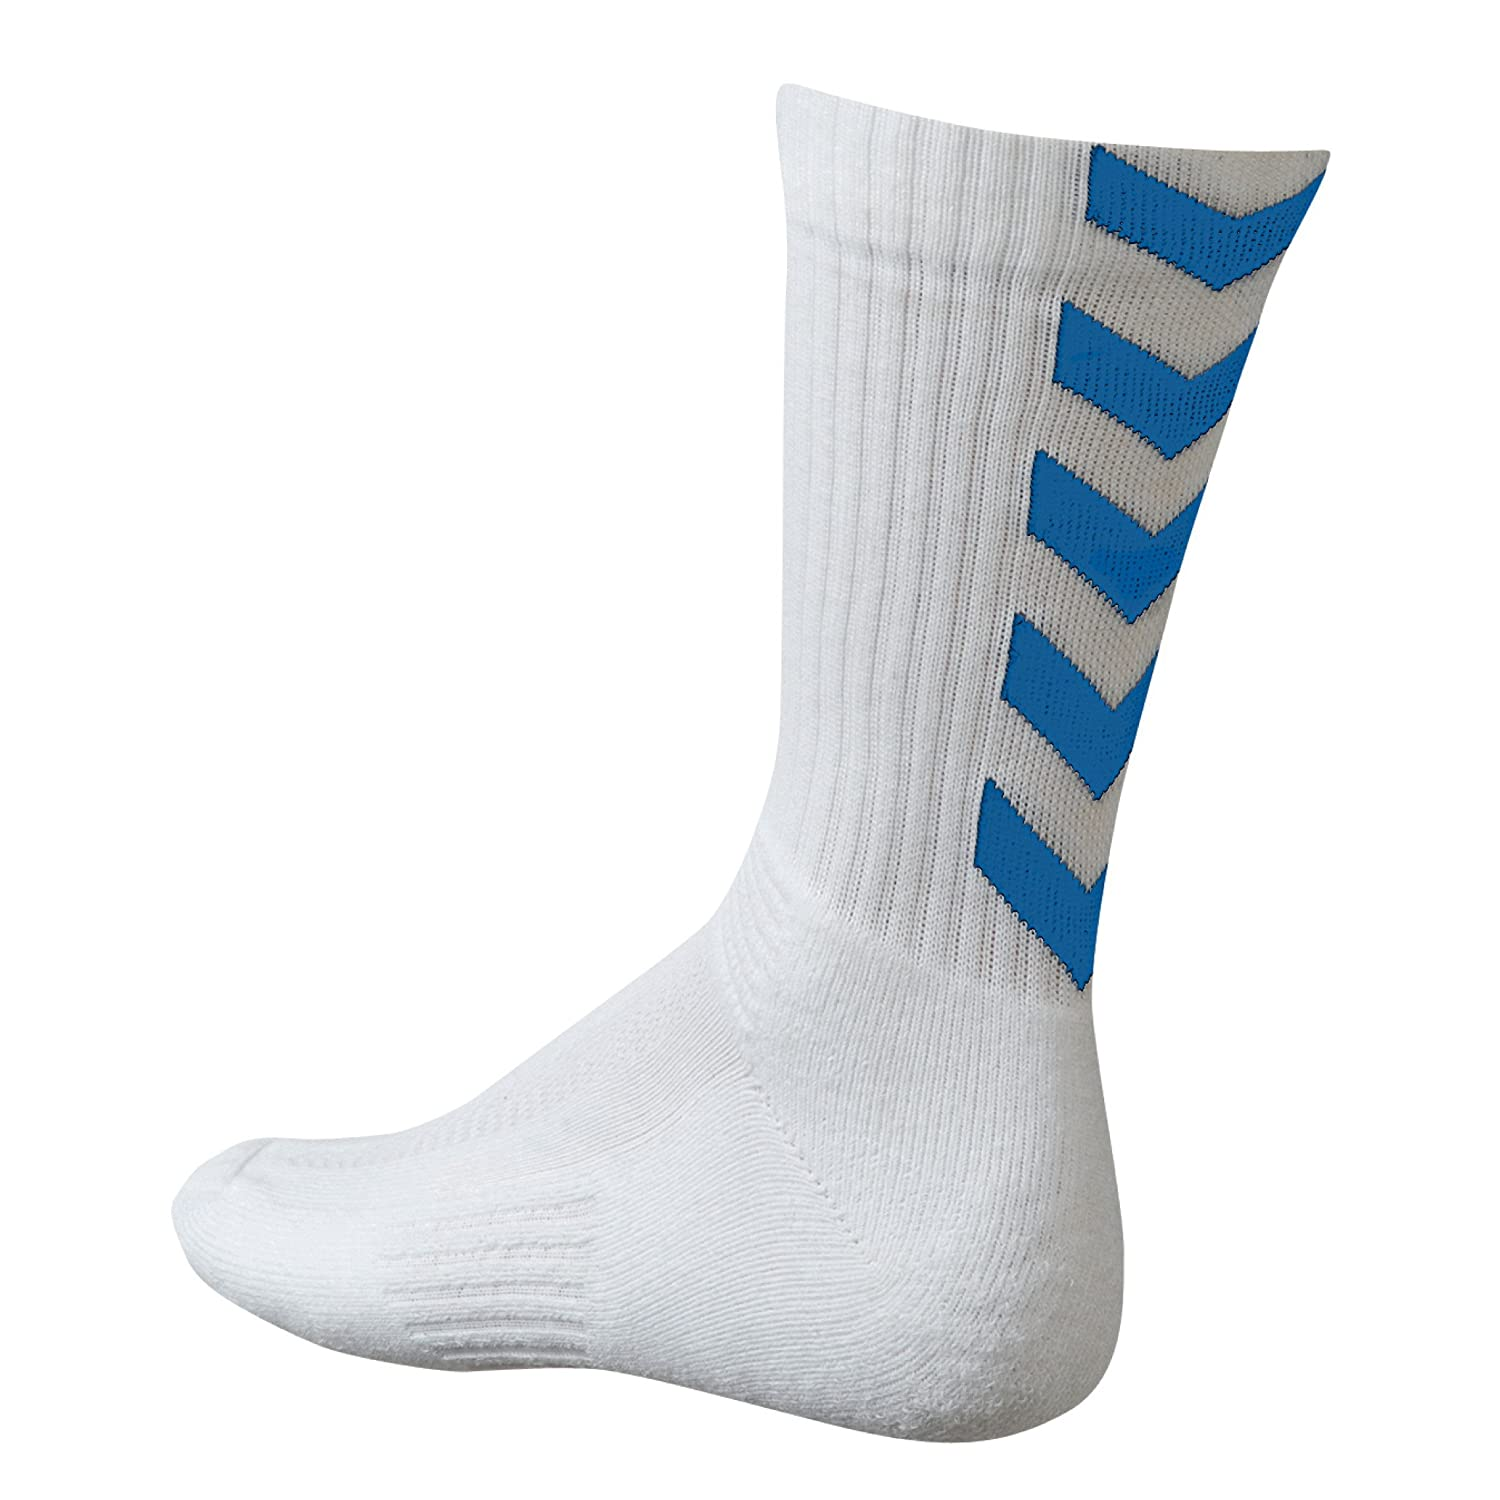 Chaussettes Hummel Authentic Indoor - Blanc / Royal: Amazon.es: Deportes y aire libre